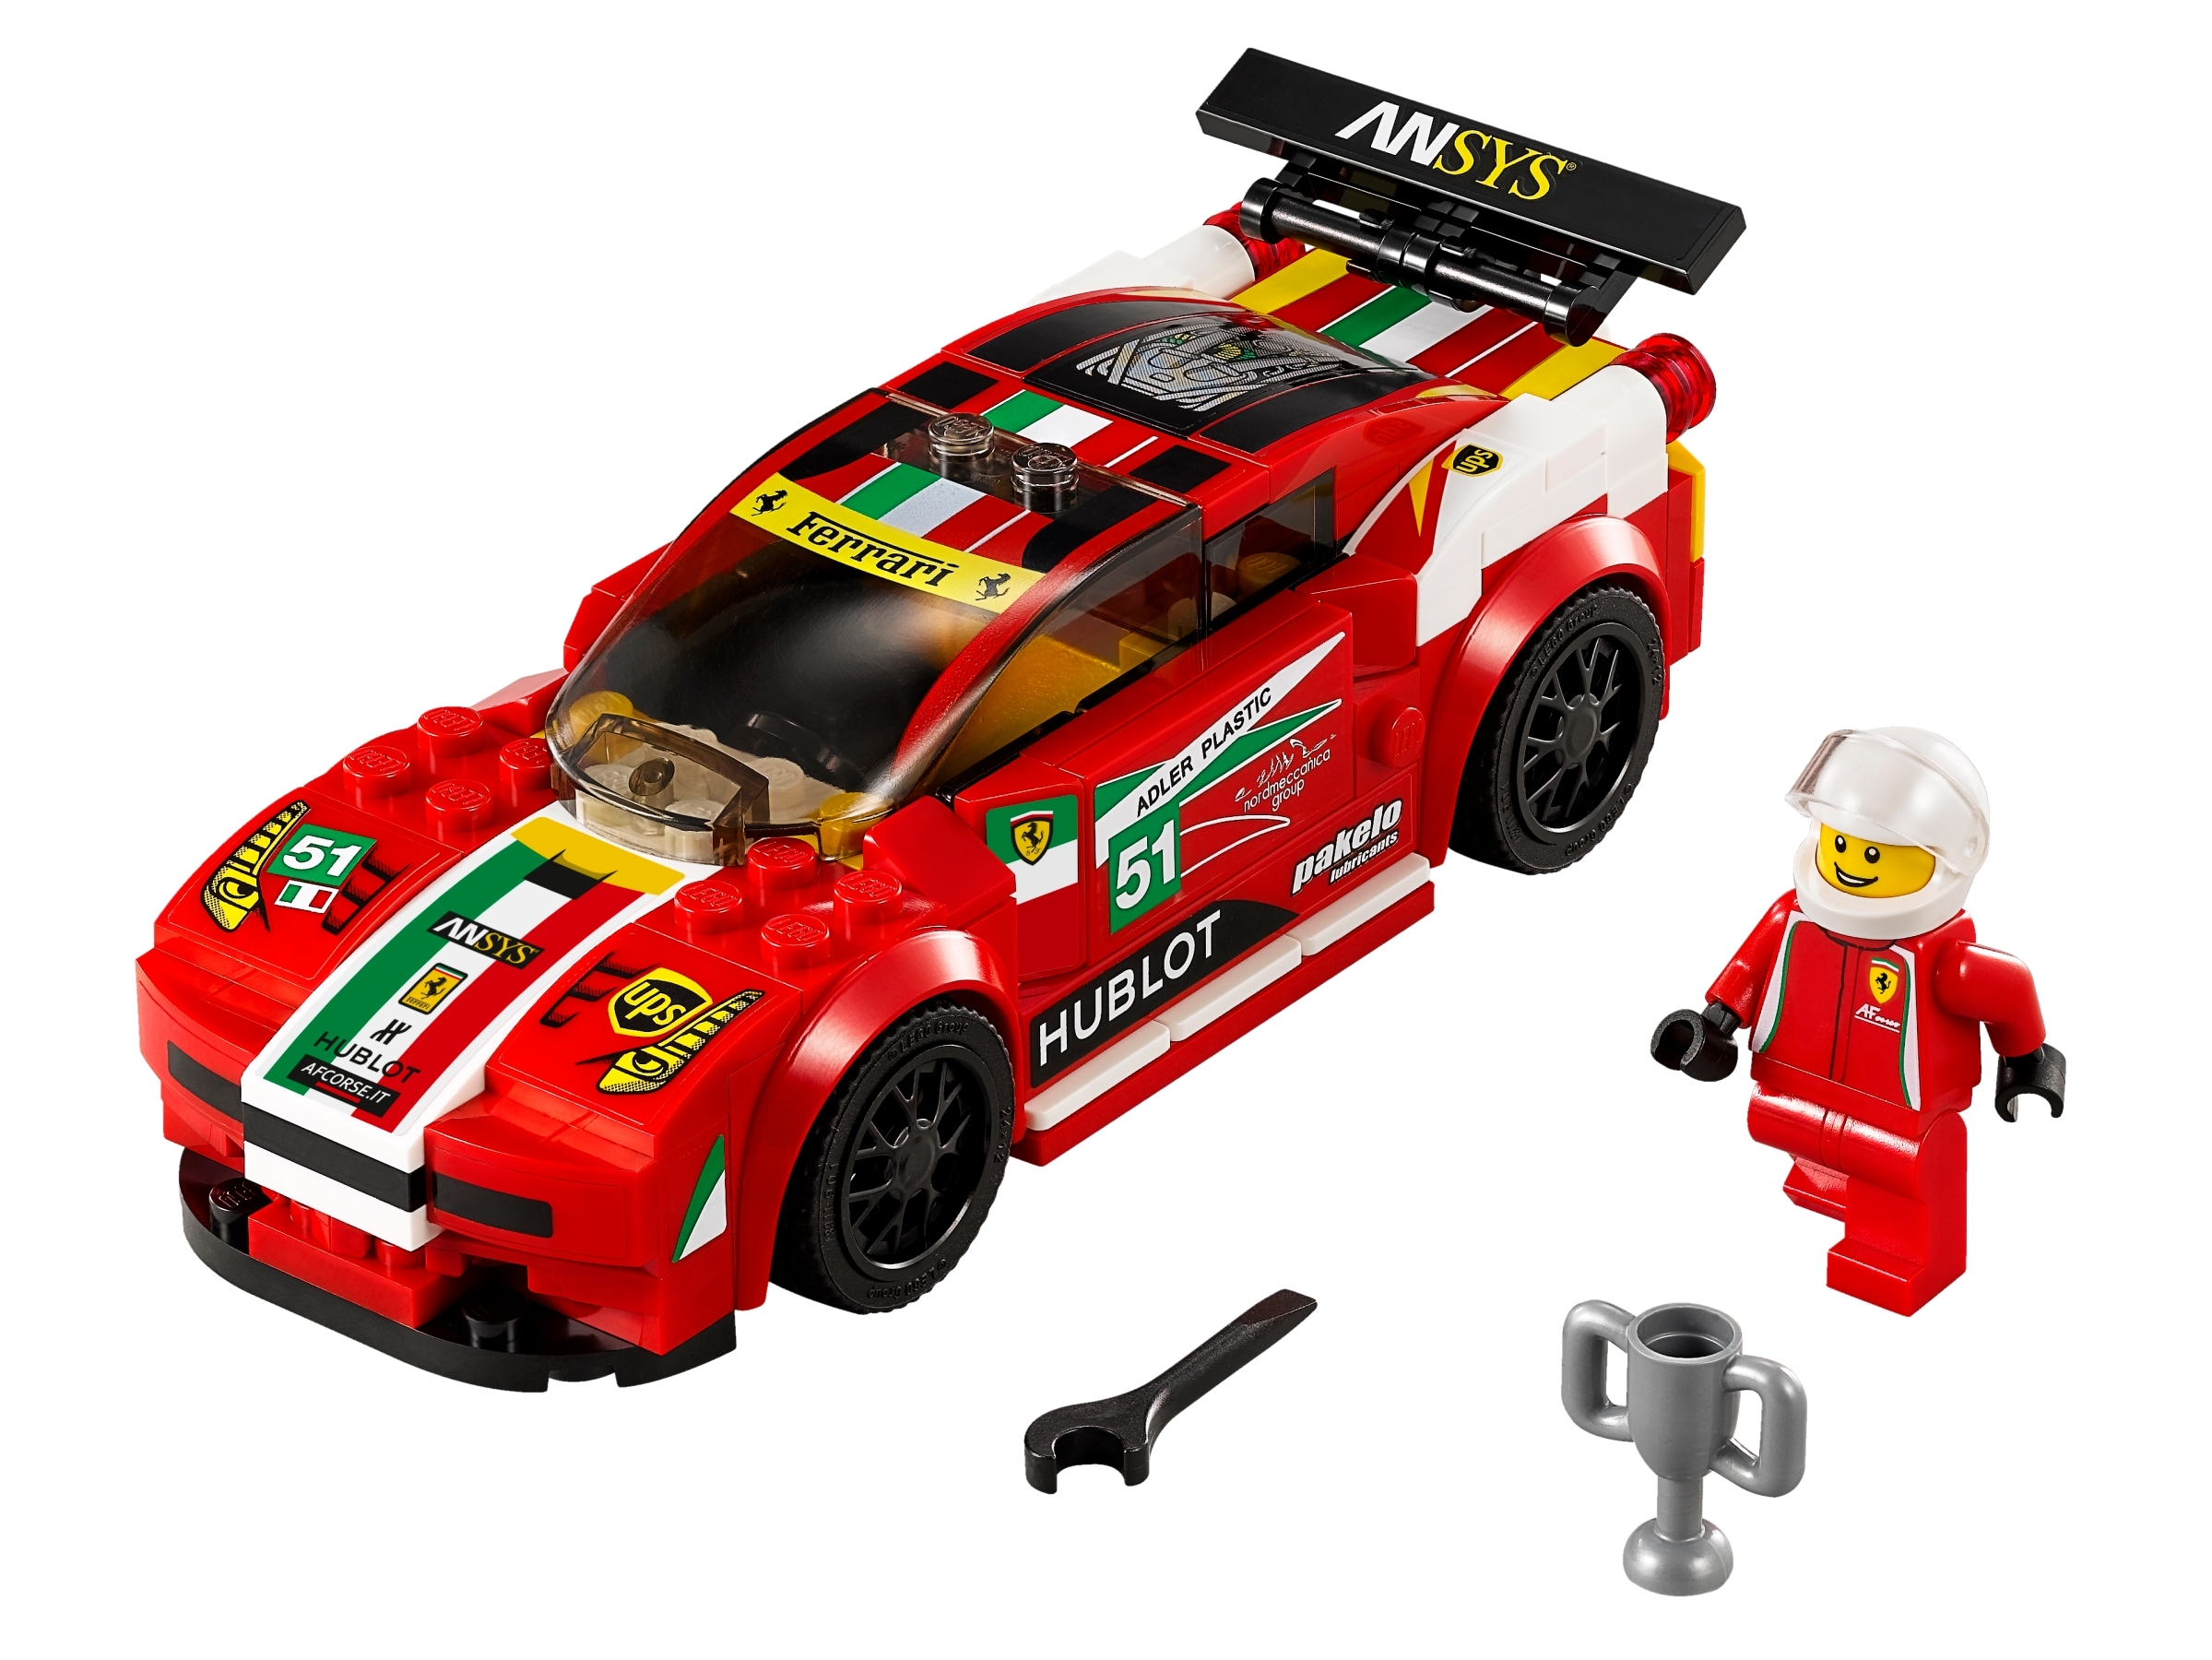 458 Italia Gt2 75908 Speed Champions Buy Online At The Official Lego Shop Gb